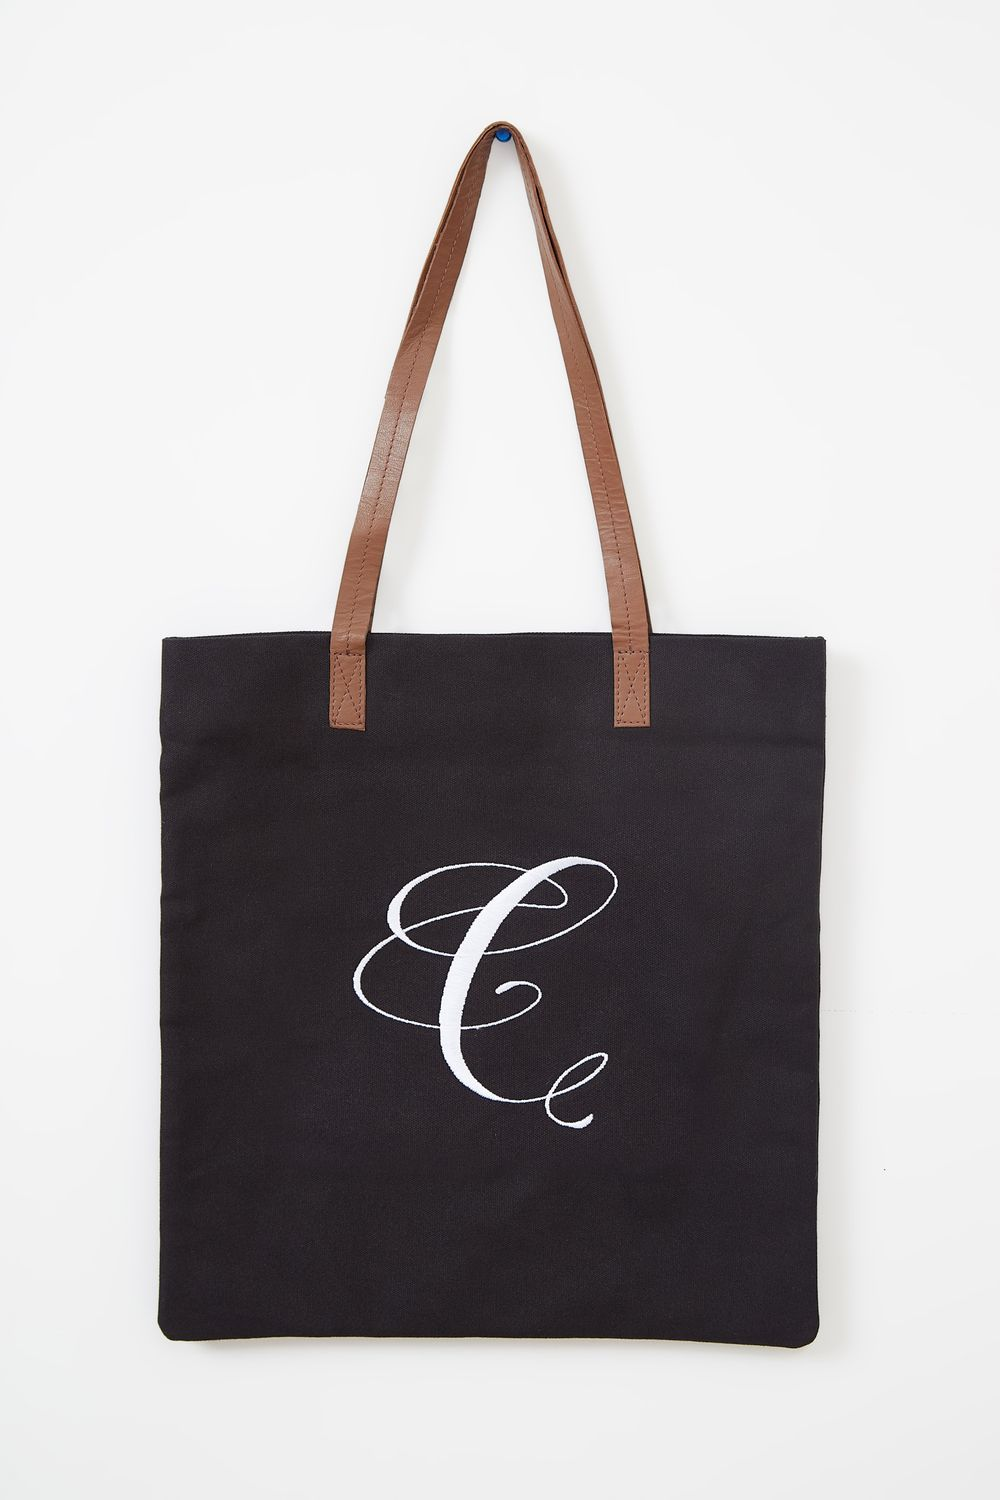 Cara Letter Canvas Tote Bag